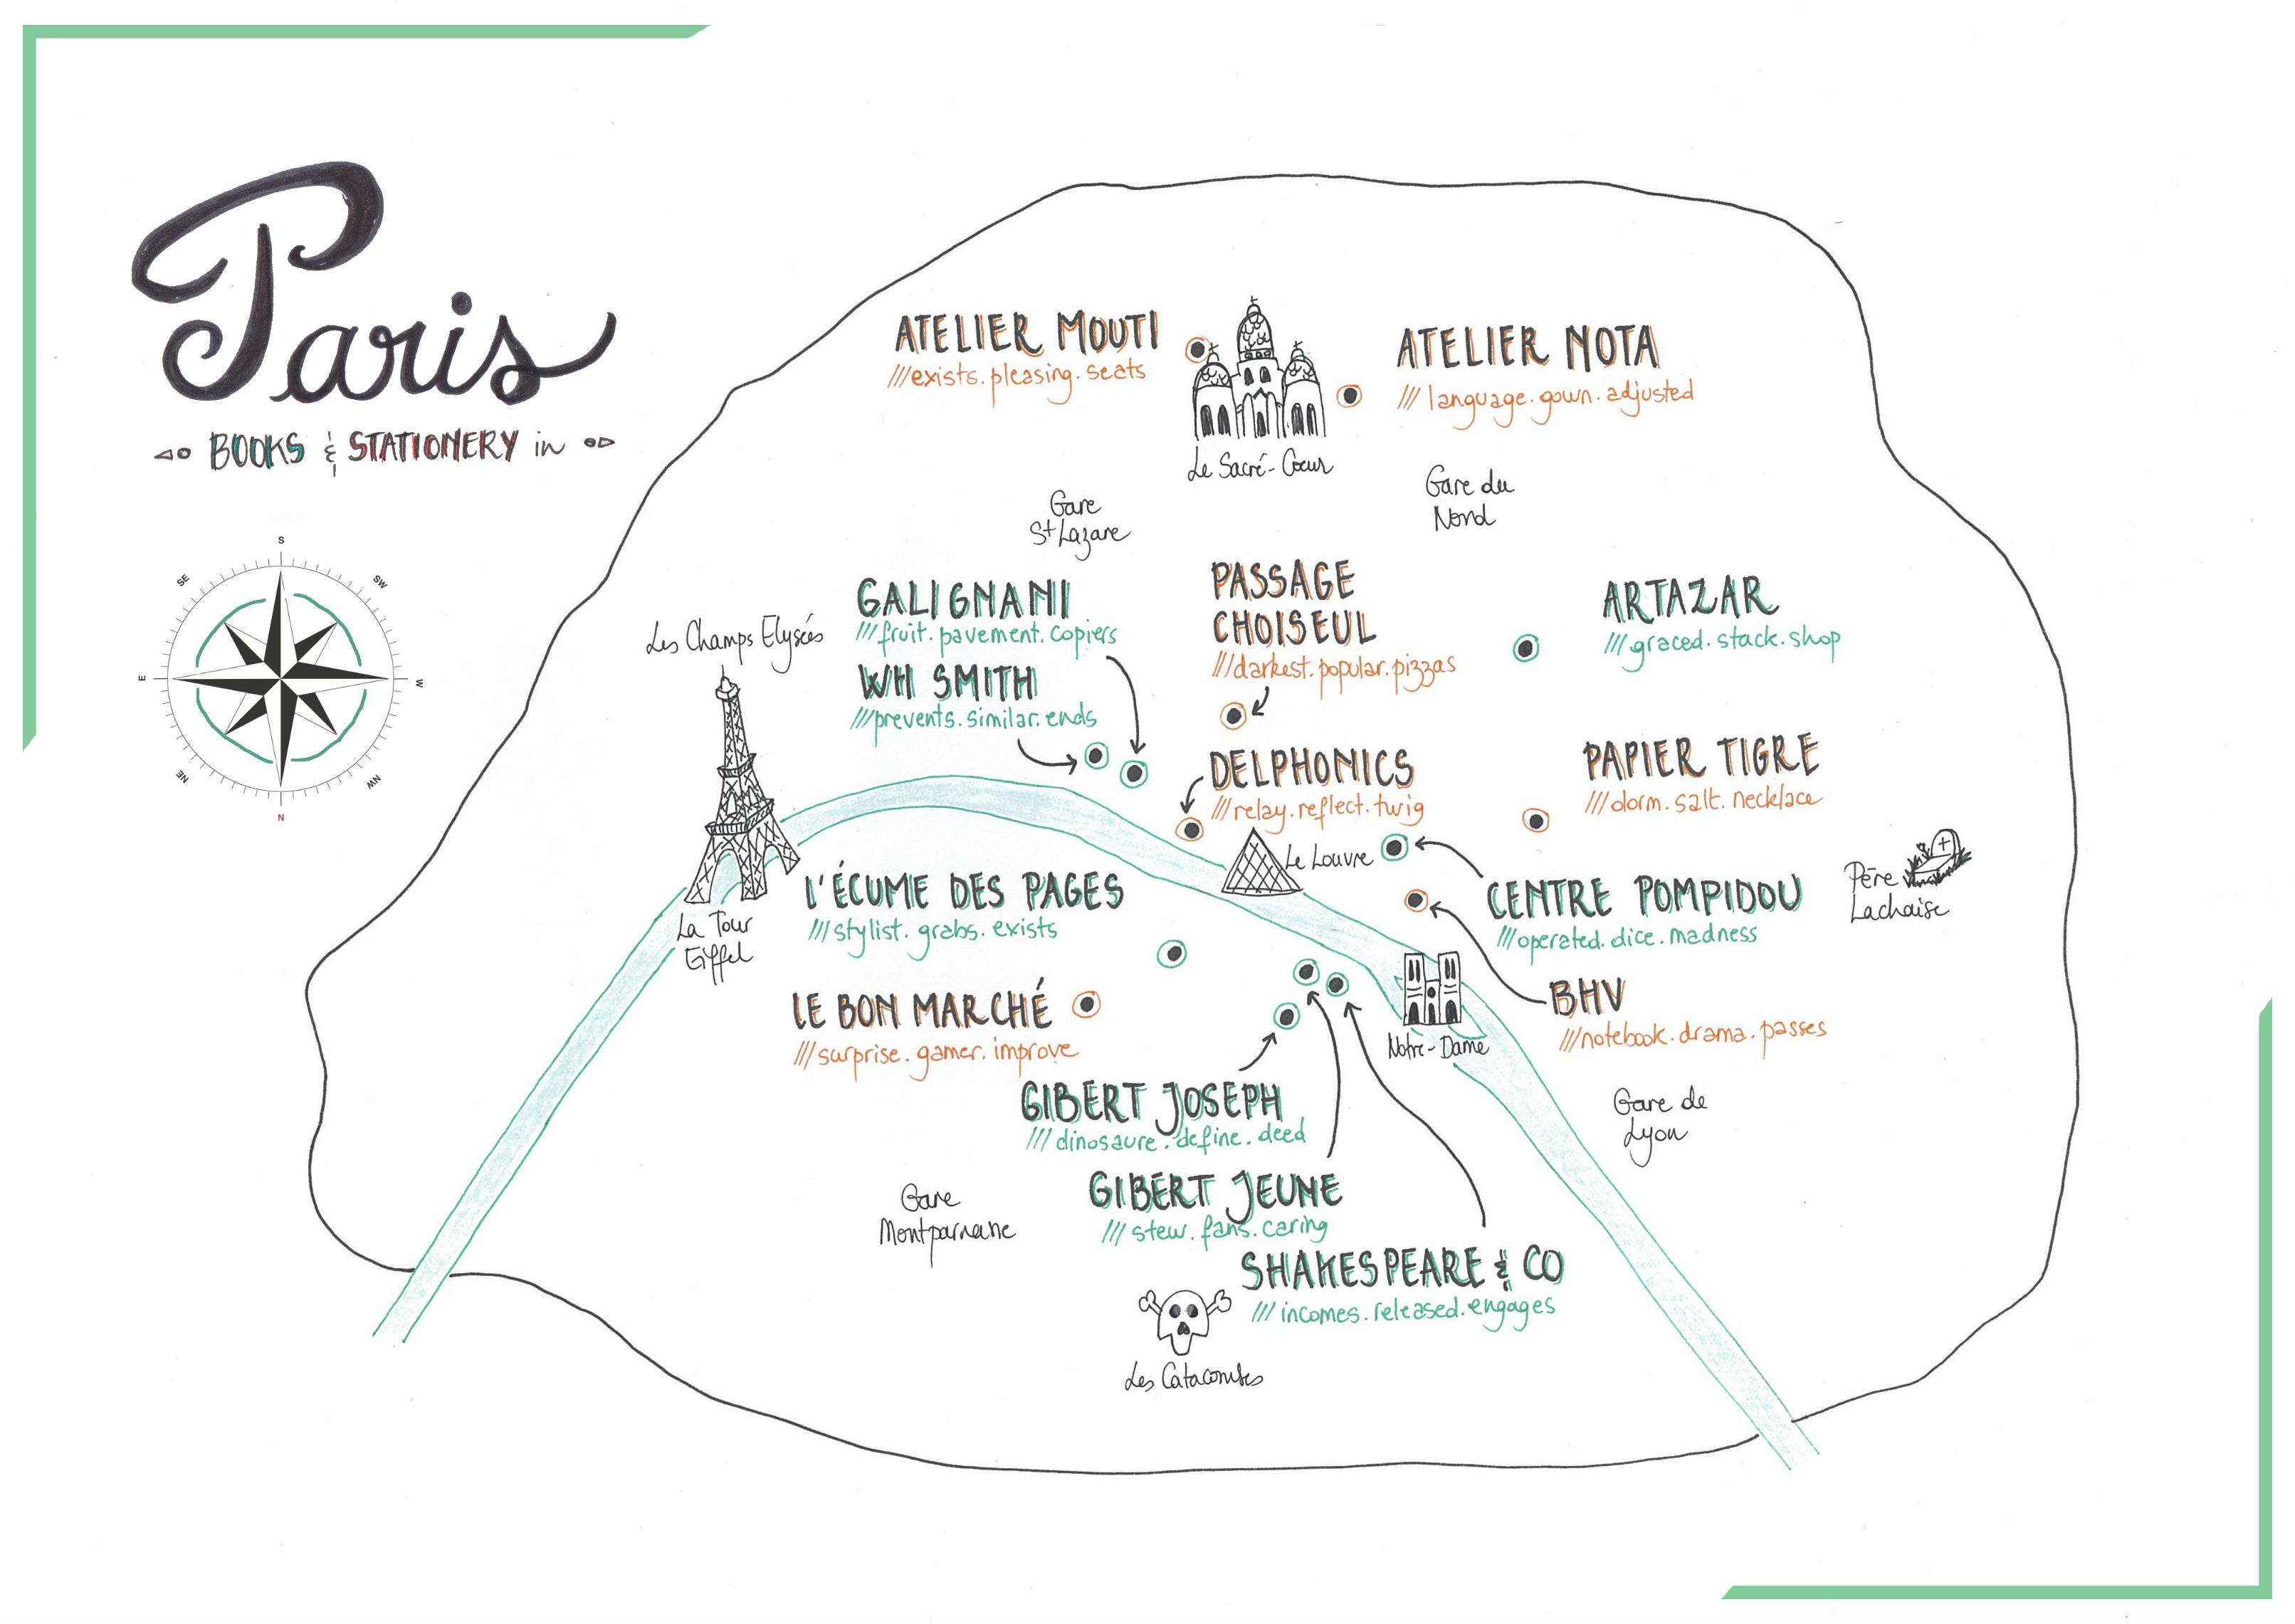 Books and Stationery in Paris, map by Wapapum